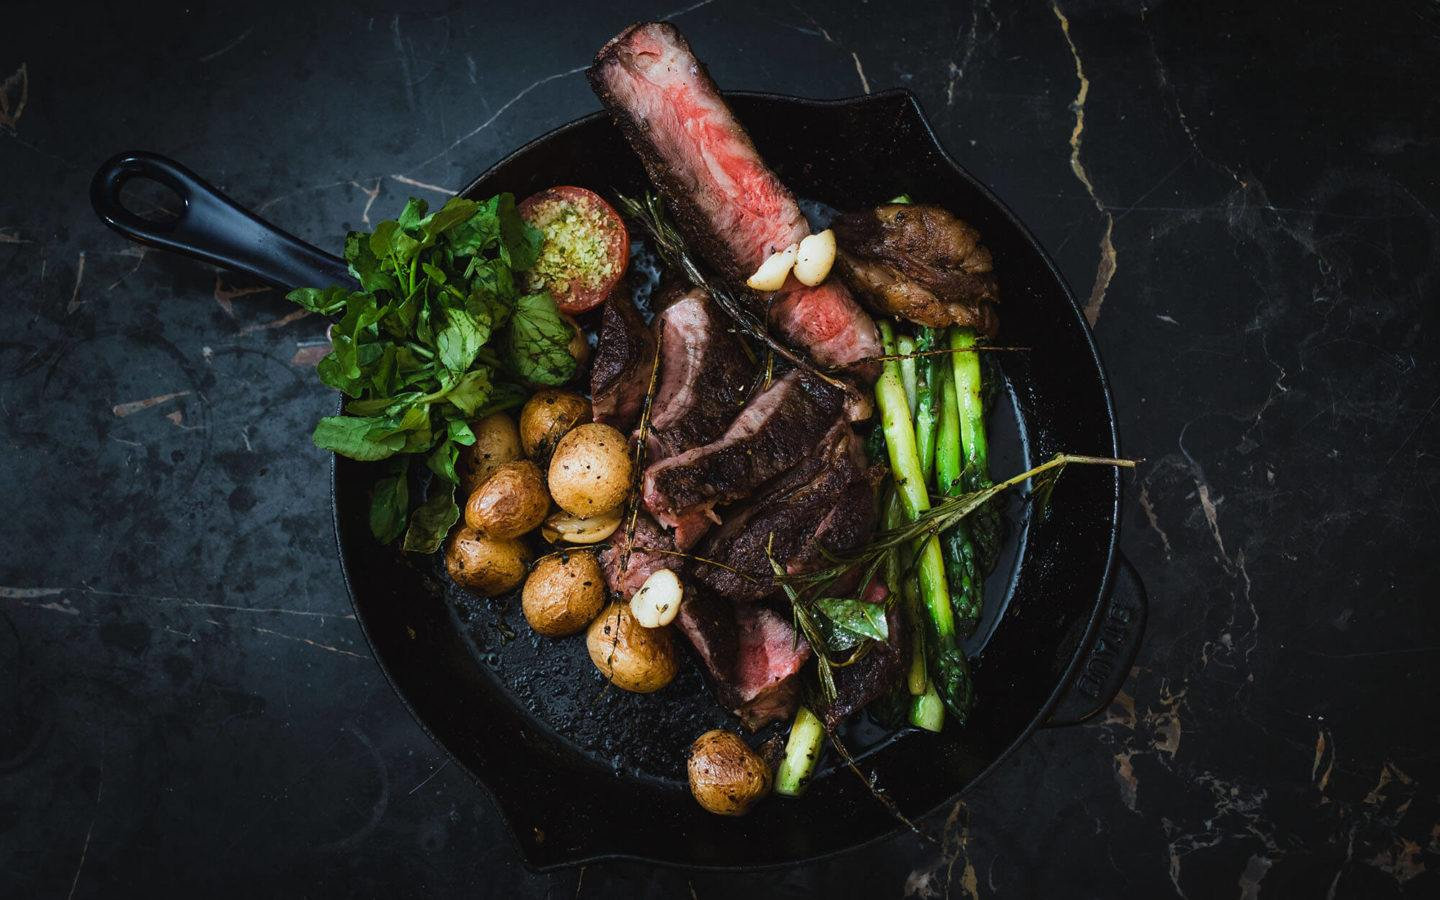 Cast iron pan filled with steak, potatoes and greens